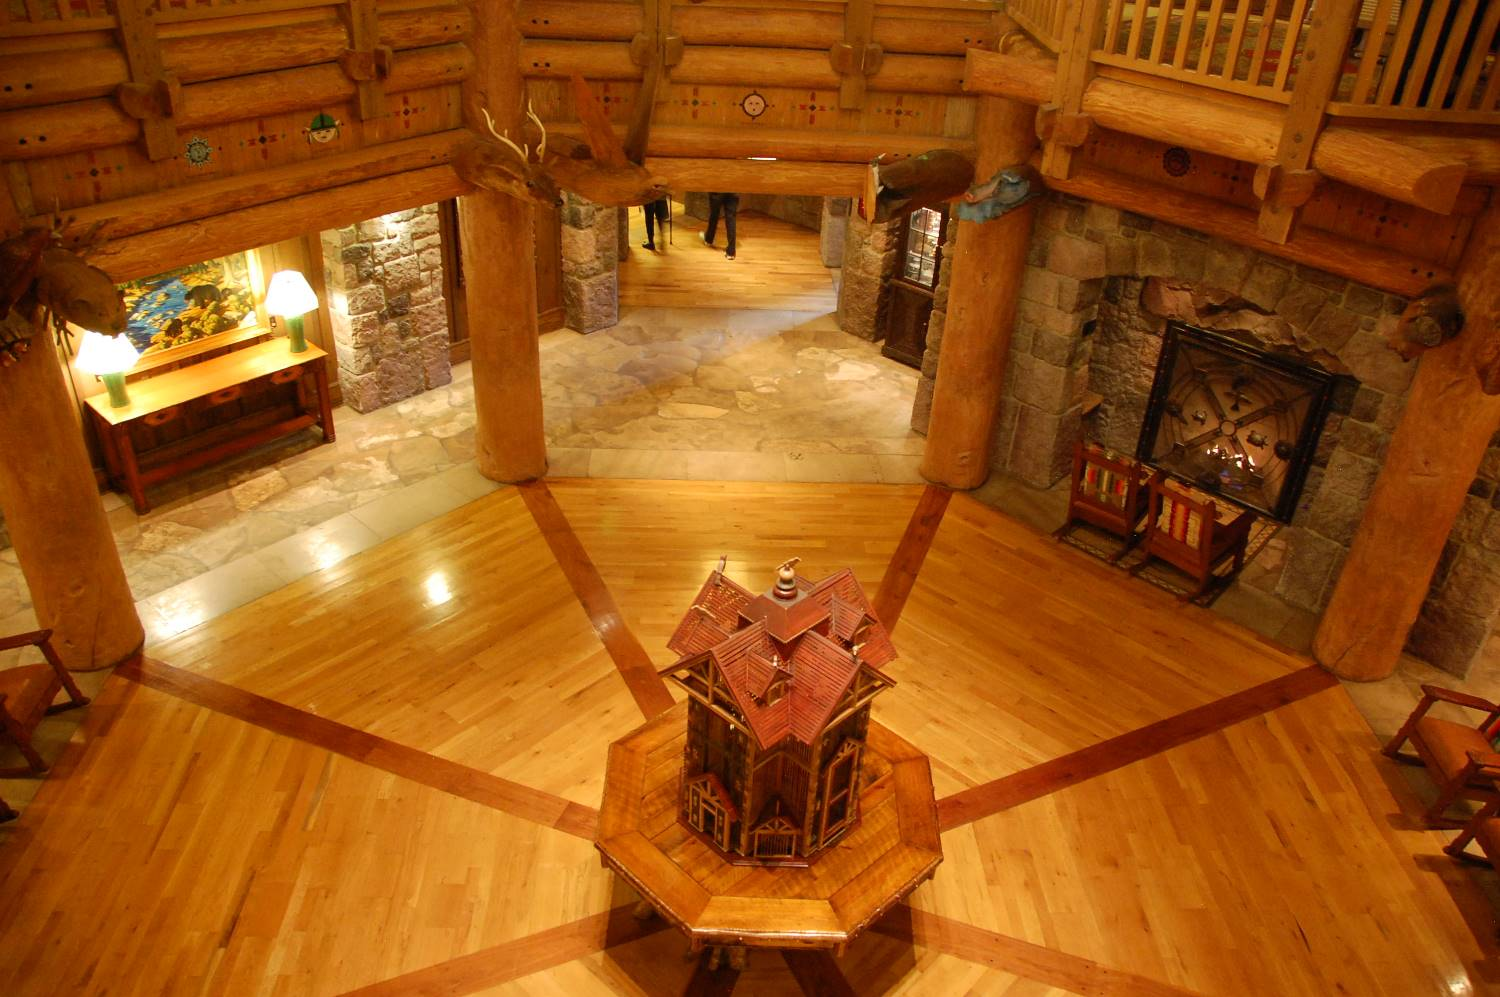 The beautiful and rustic lobby in the Villas at Disney's Wilderness Lodge was inspired by the American Railroad hotels on the 1860's.